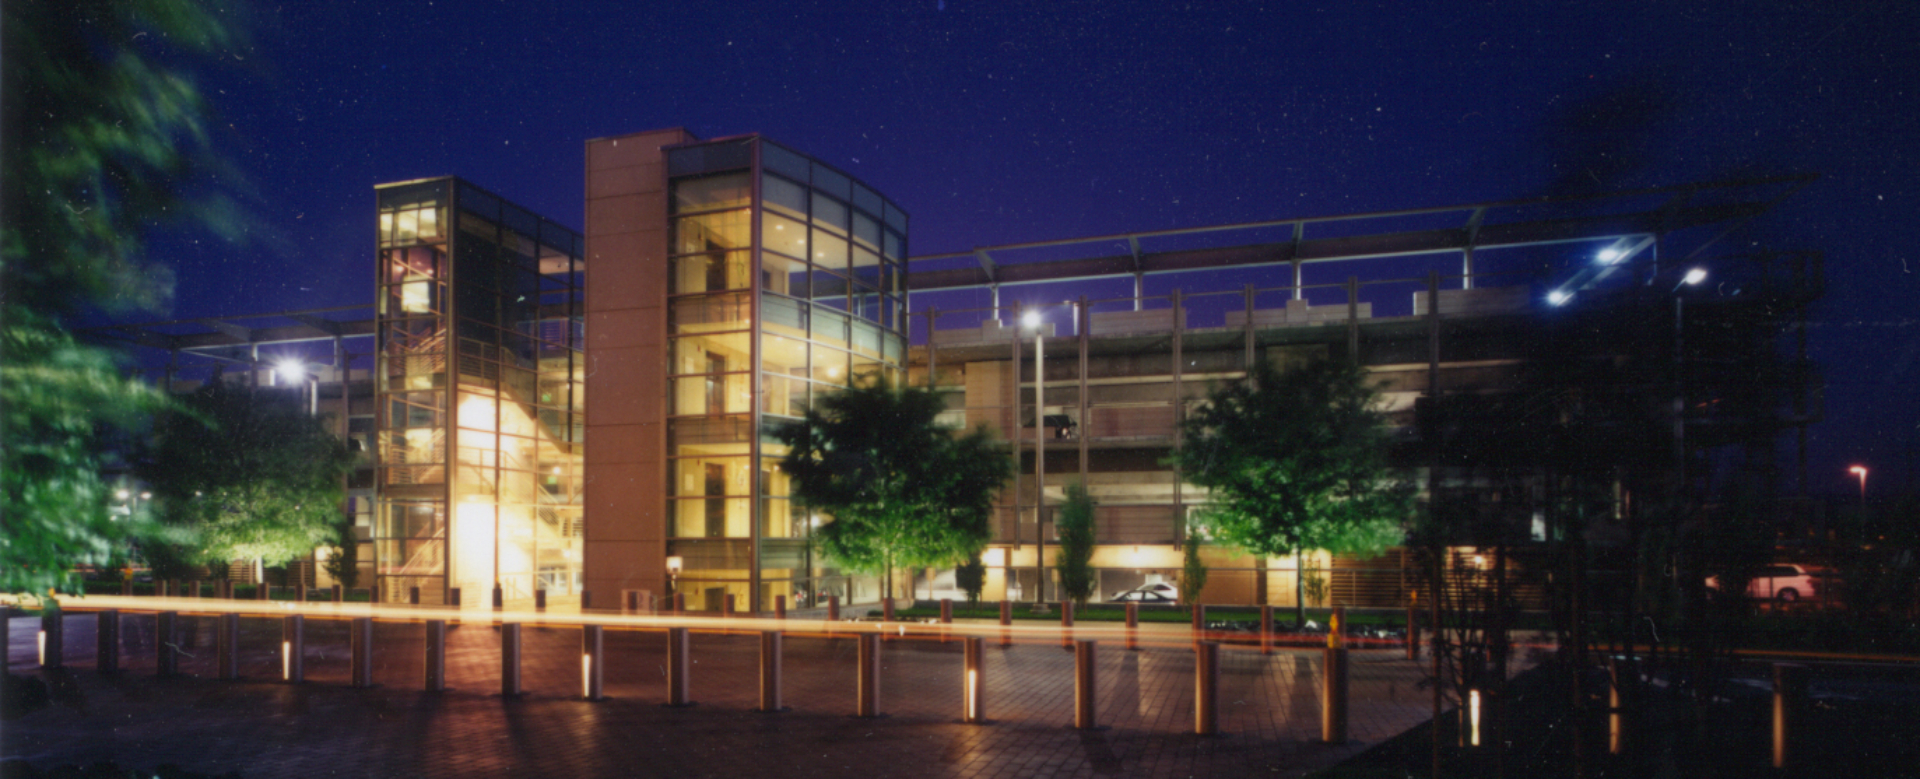 PeopleSoft, Inc. Parking Structure A